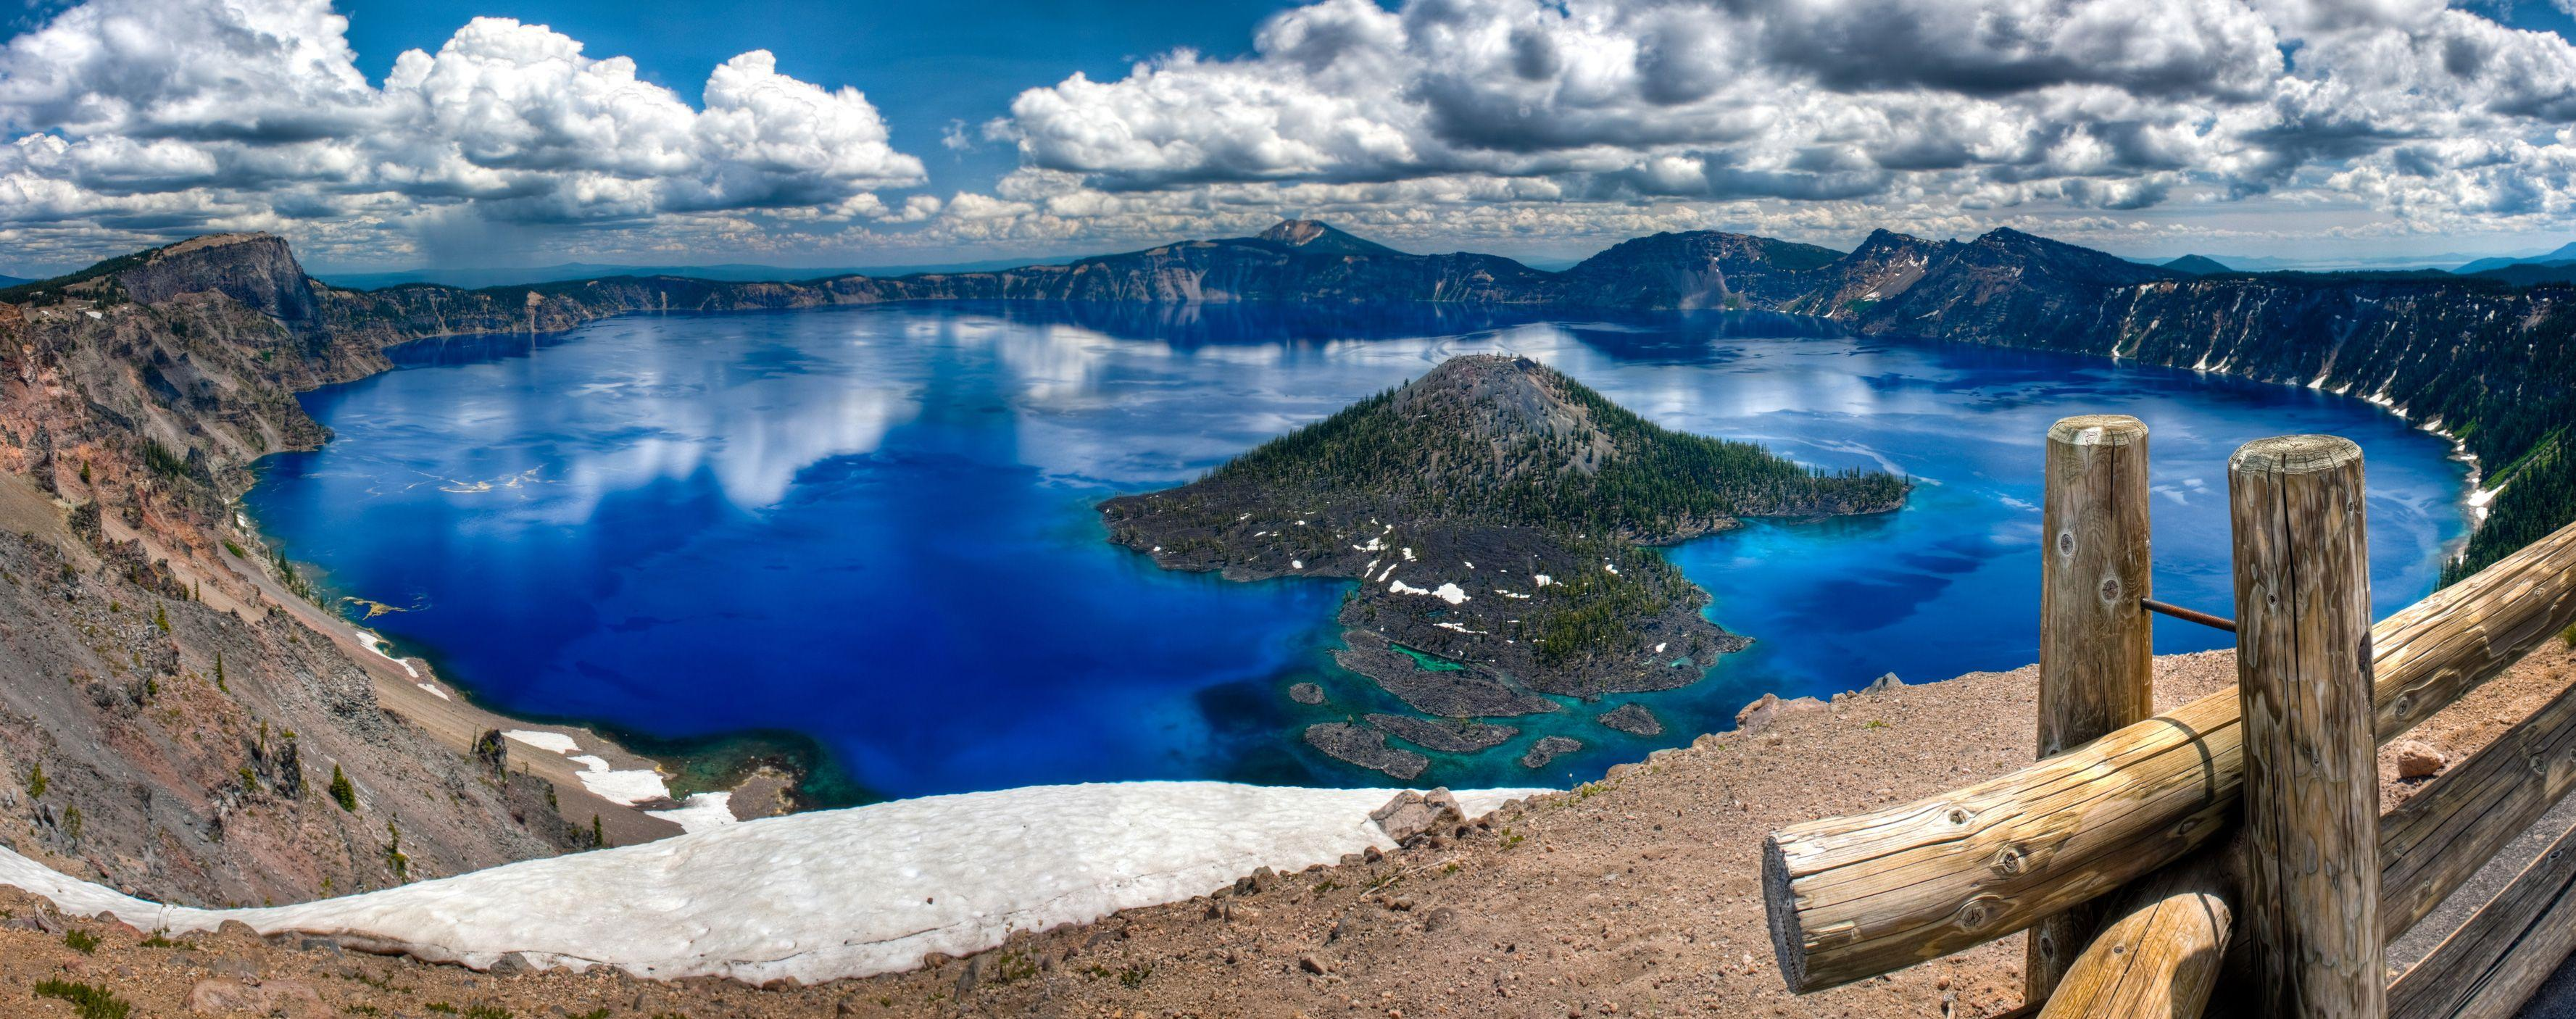 Becca Curram: Crater Lake National Park High Quality Wallpaper #337908